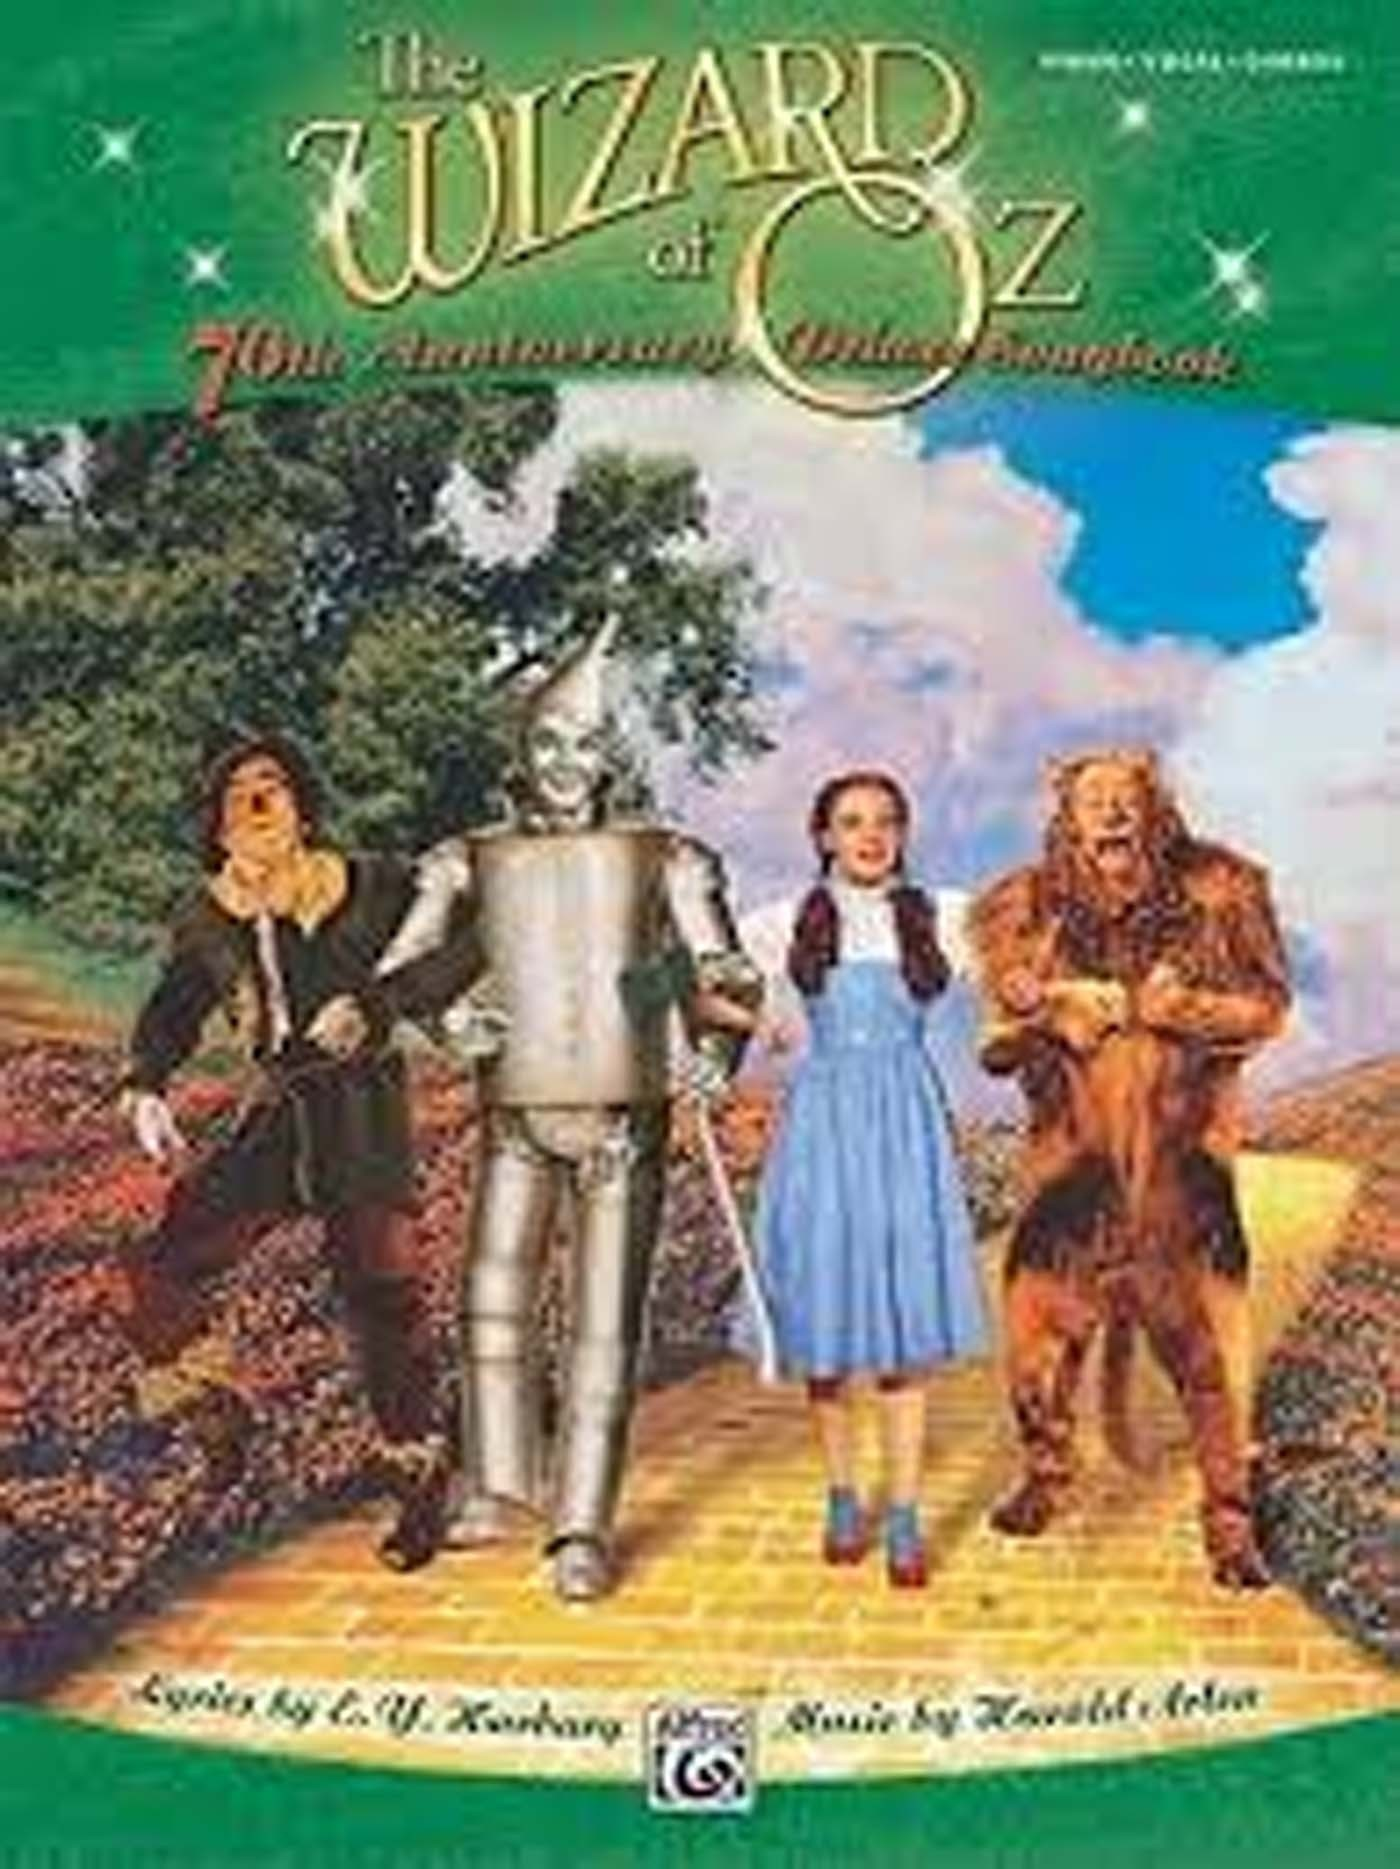 The Wizard Of Oz 70th Anniversary Deluxe Songbook Piano Vocal Chords Book S98